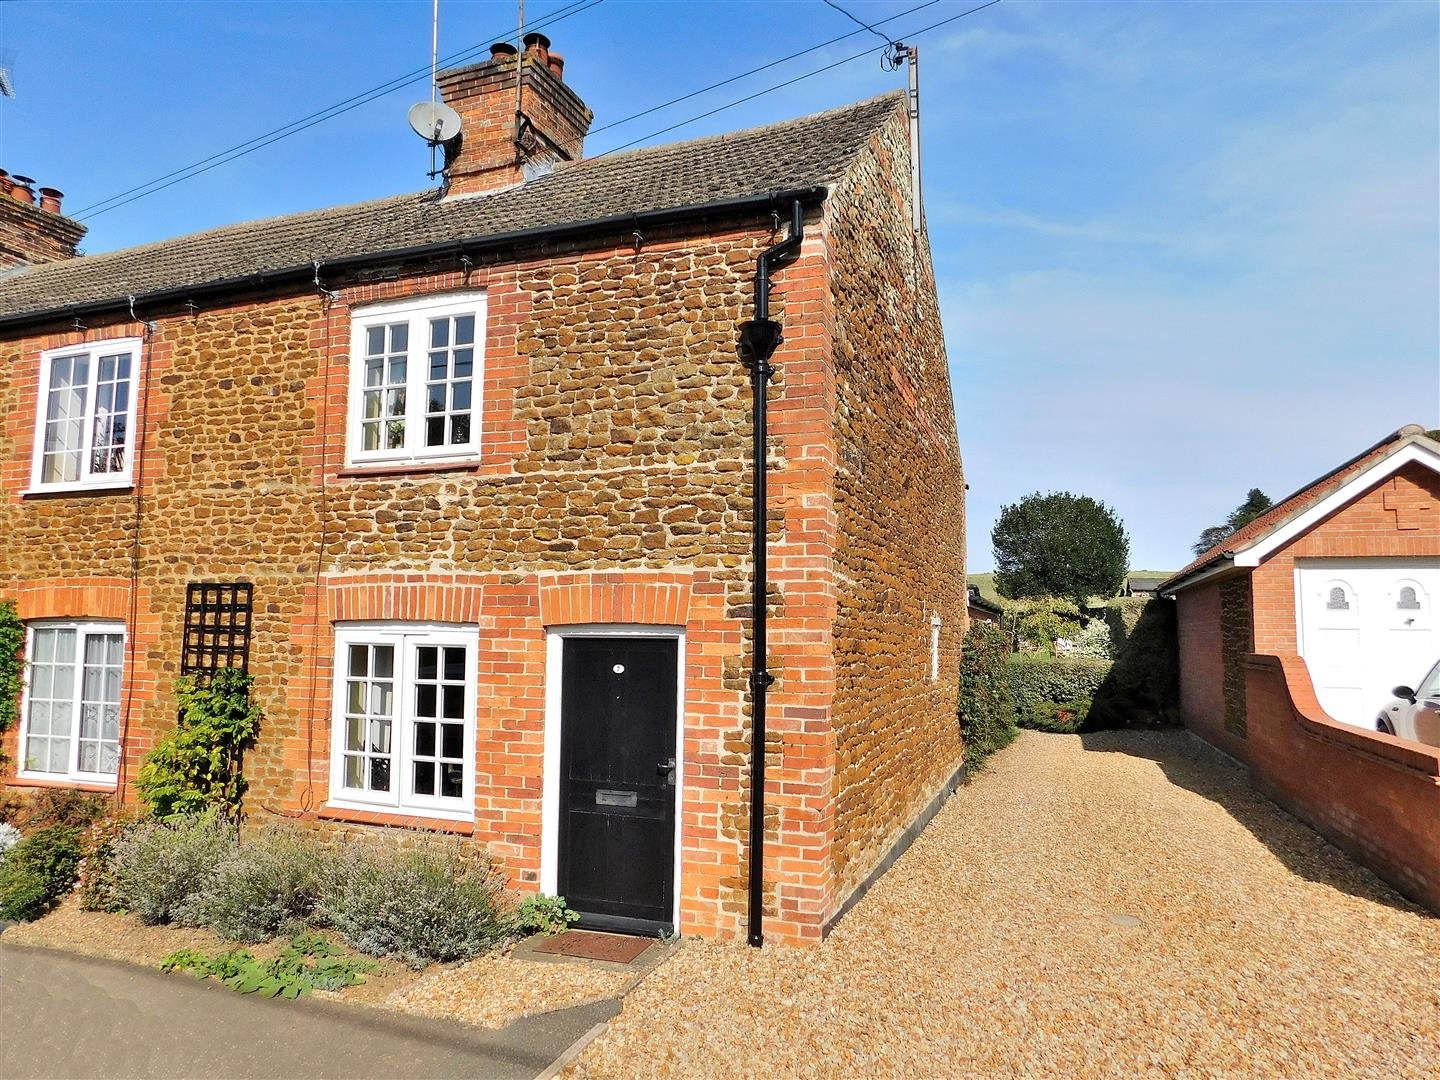 2 bed cottage for sale in King's Lynn, PE31 6JA - Property Image 1